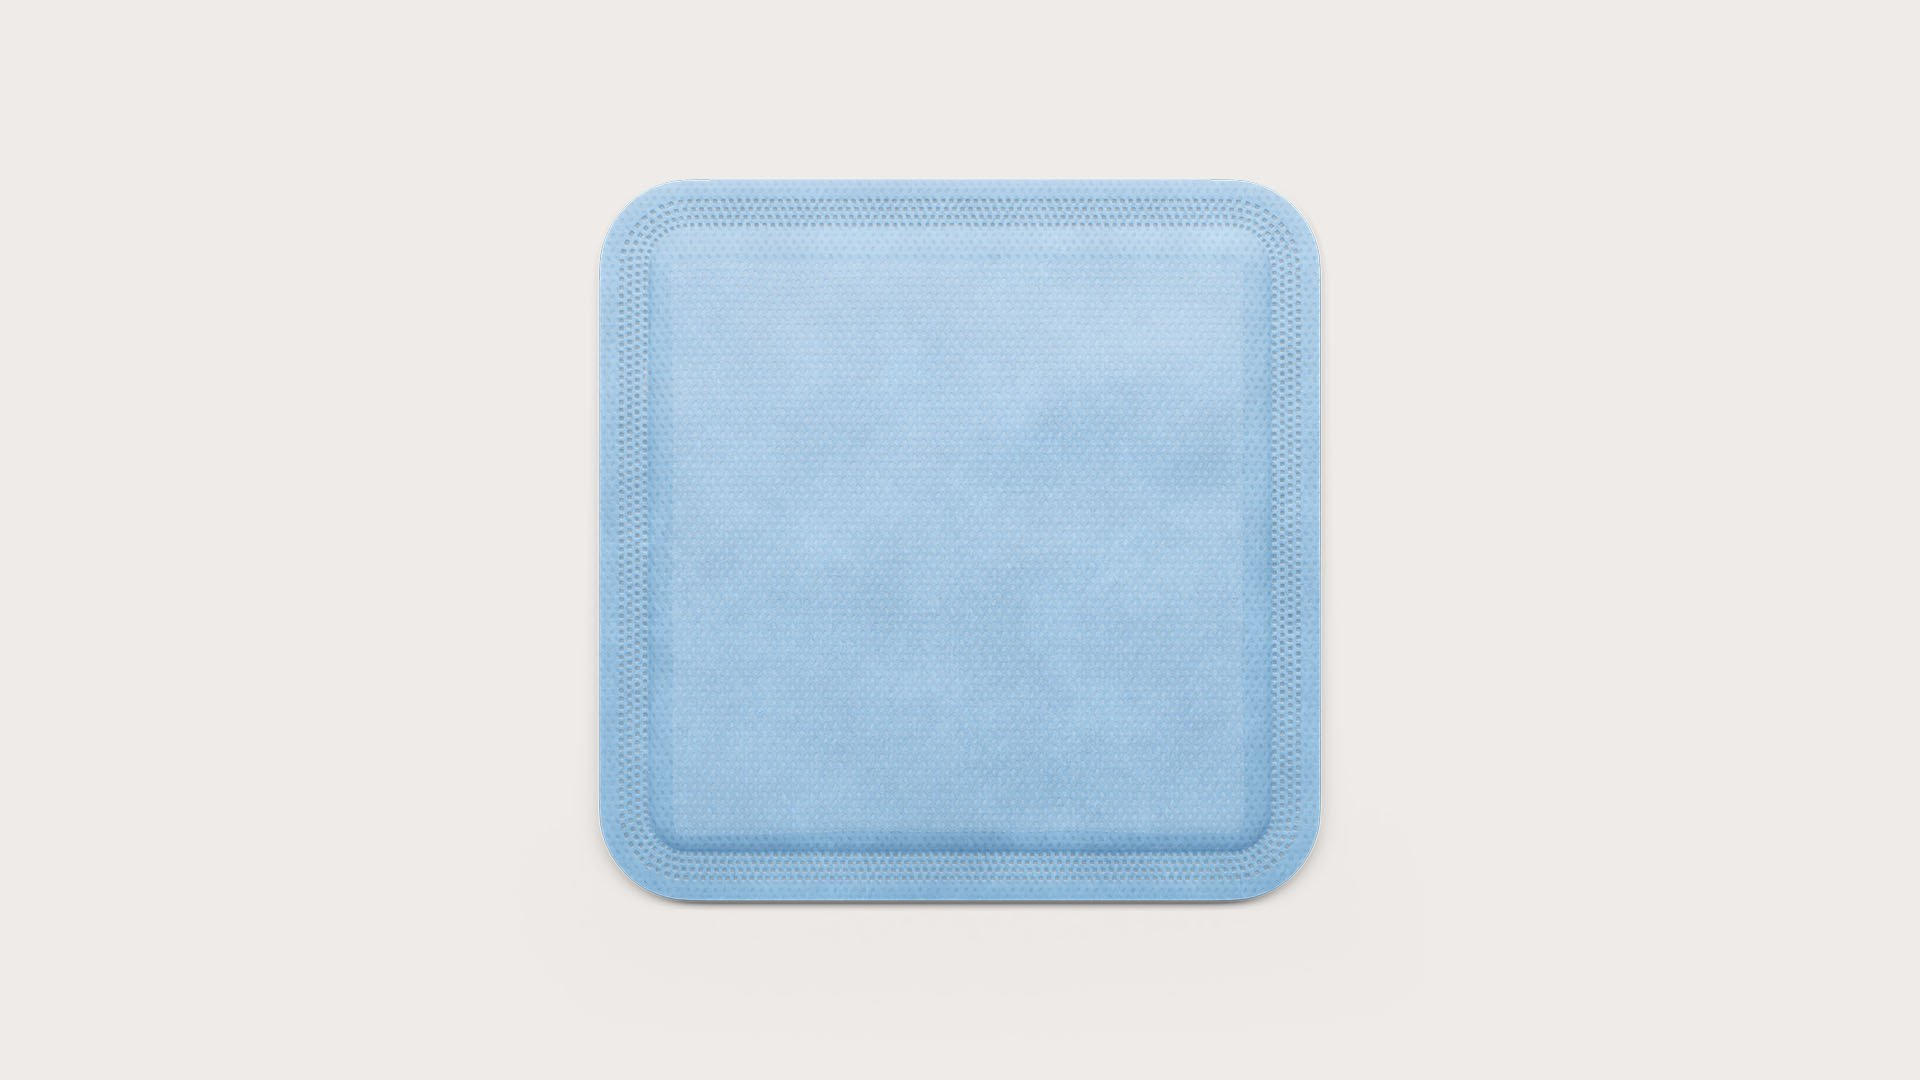 Mextra Superabsorbent image cover